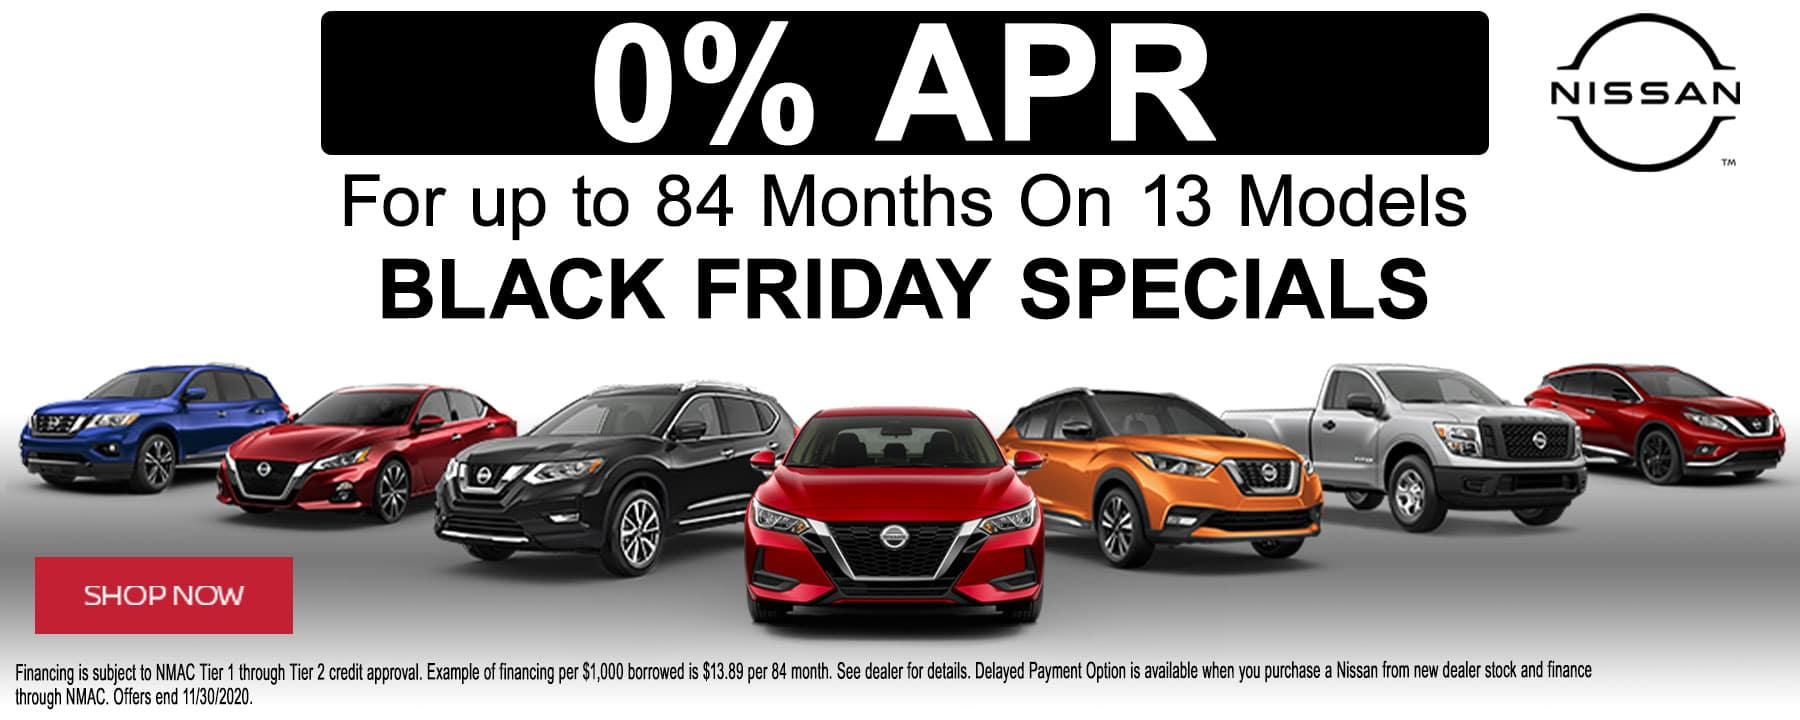 Take Advantage of Black Friday Specials and Get Zero Percent APR financing on Select Models